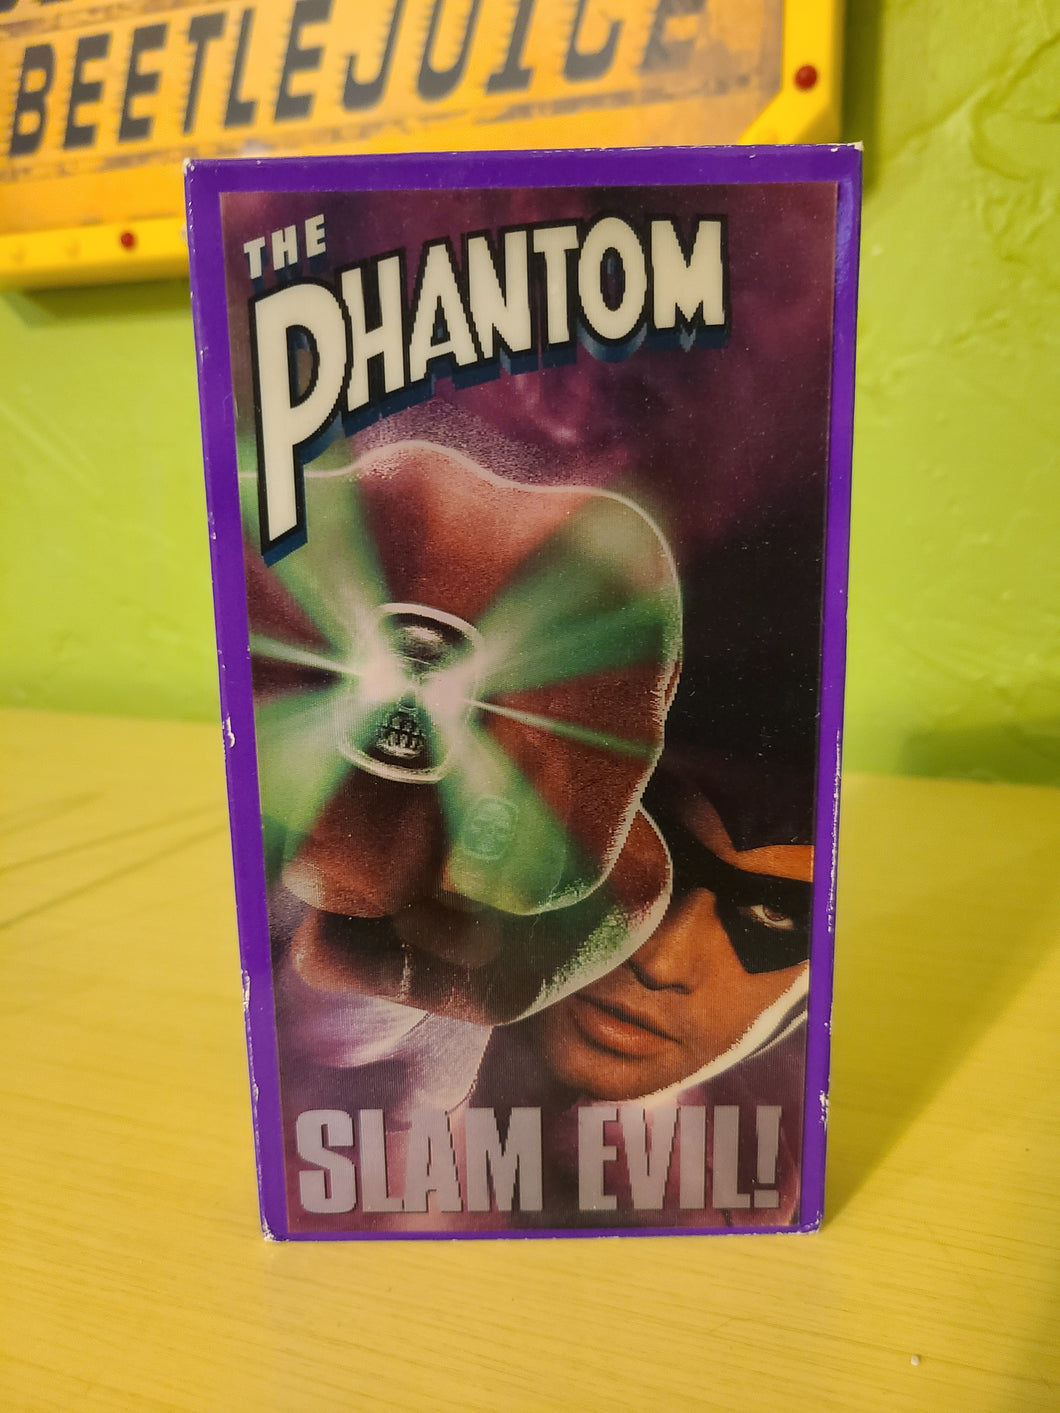 The Phantom VHS